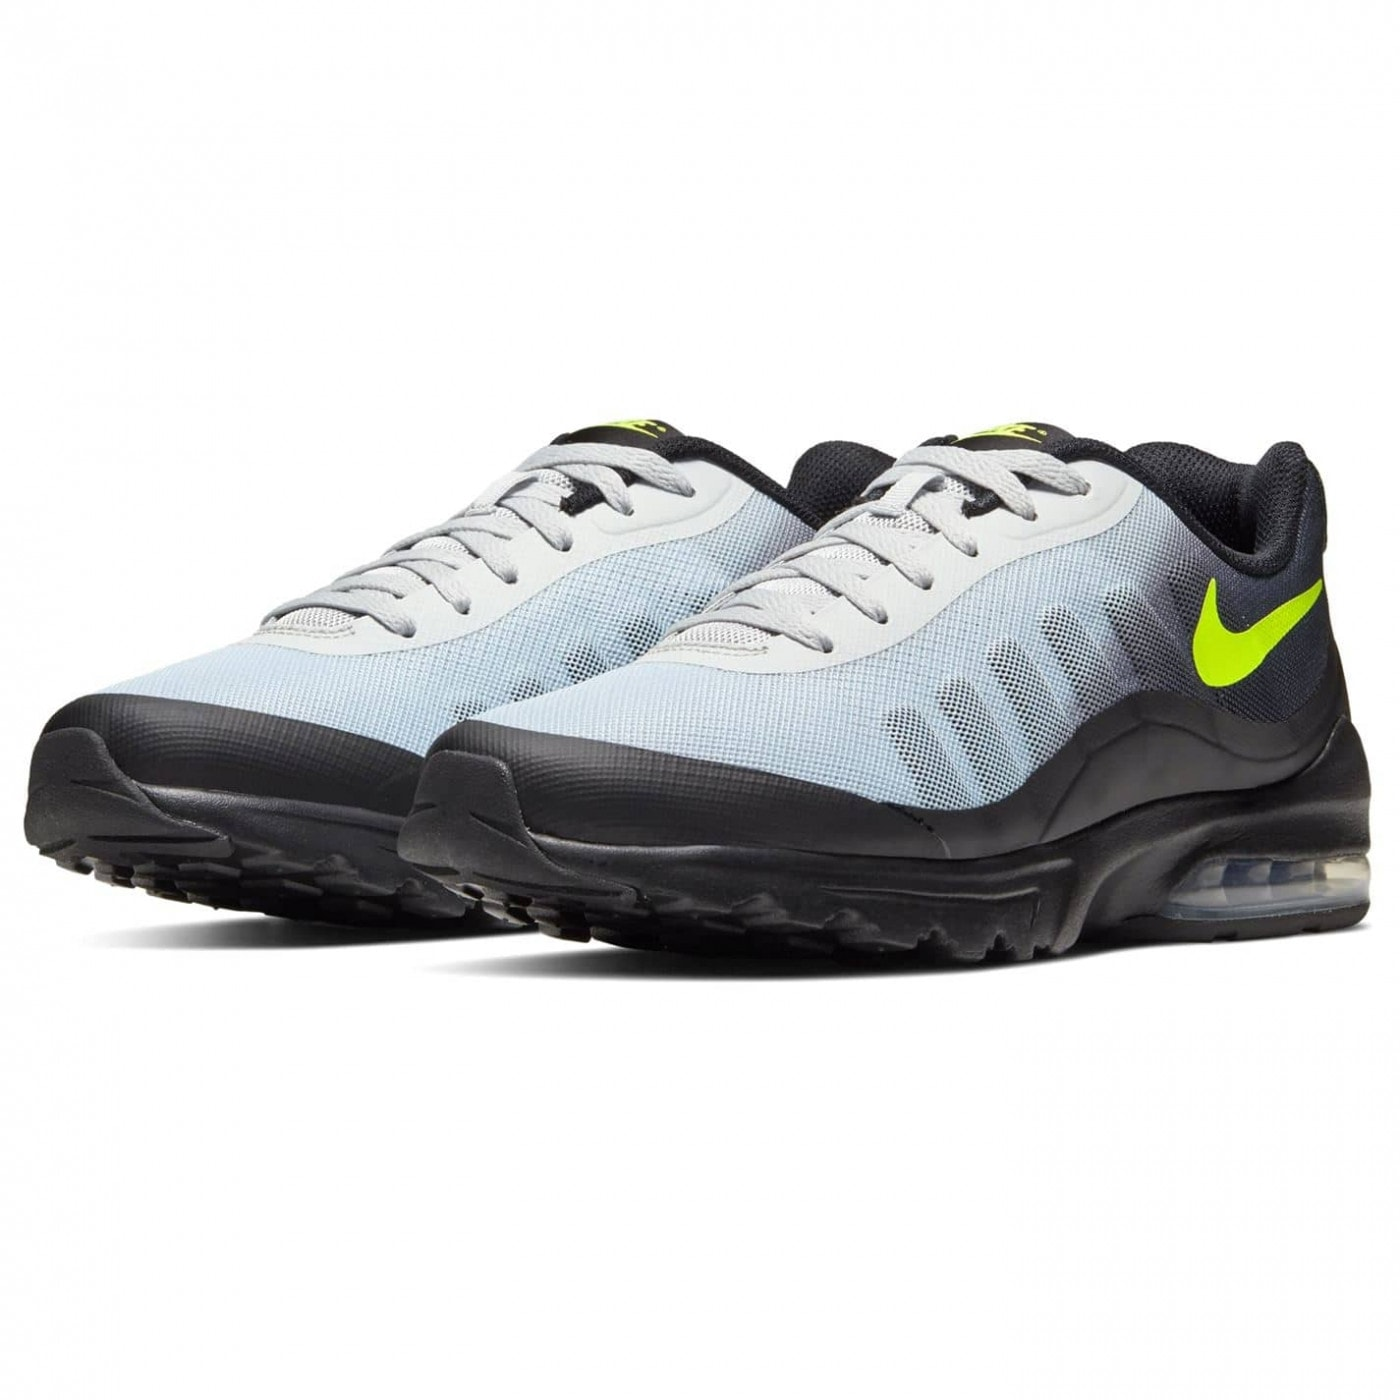 Men's trainers Nike Air Max Invigor